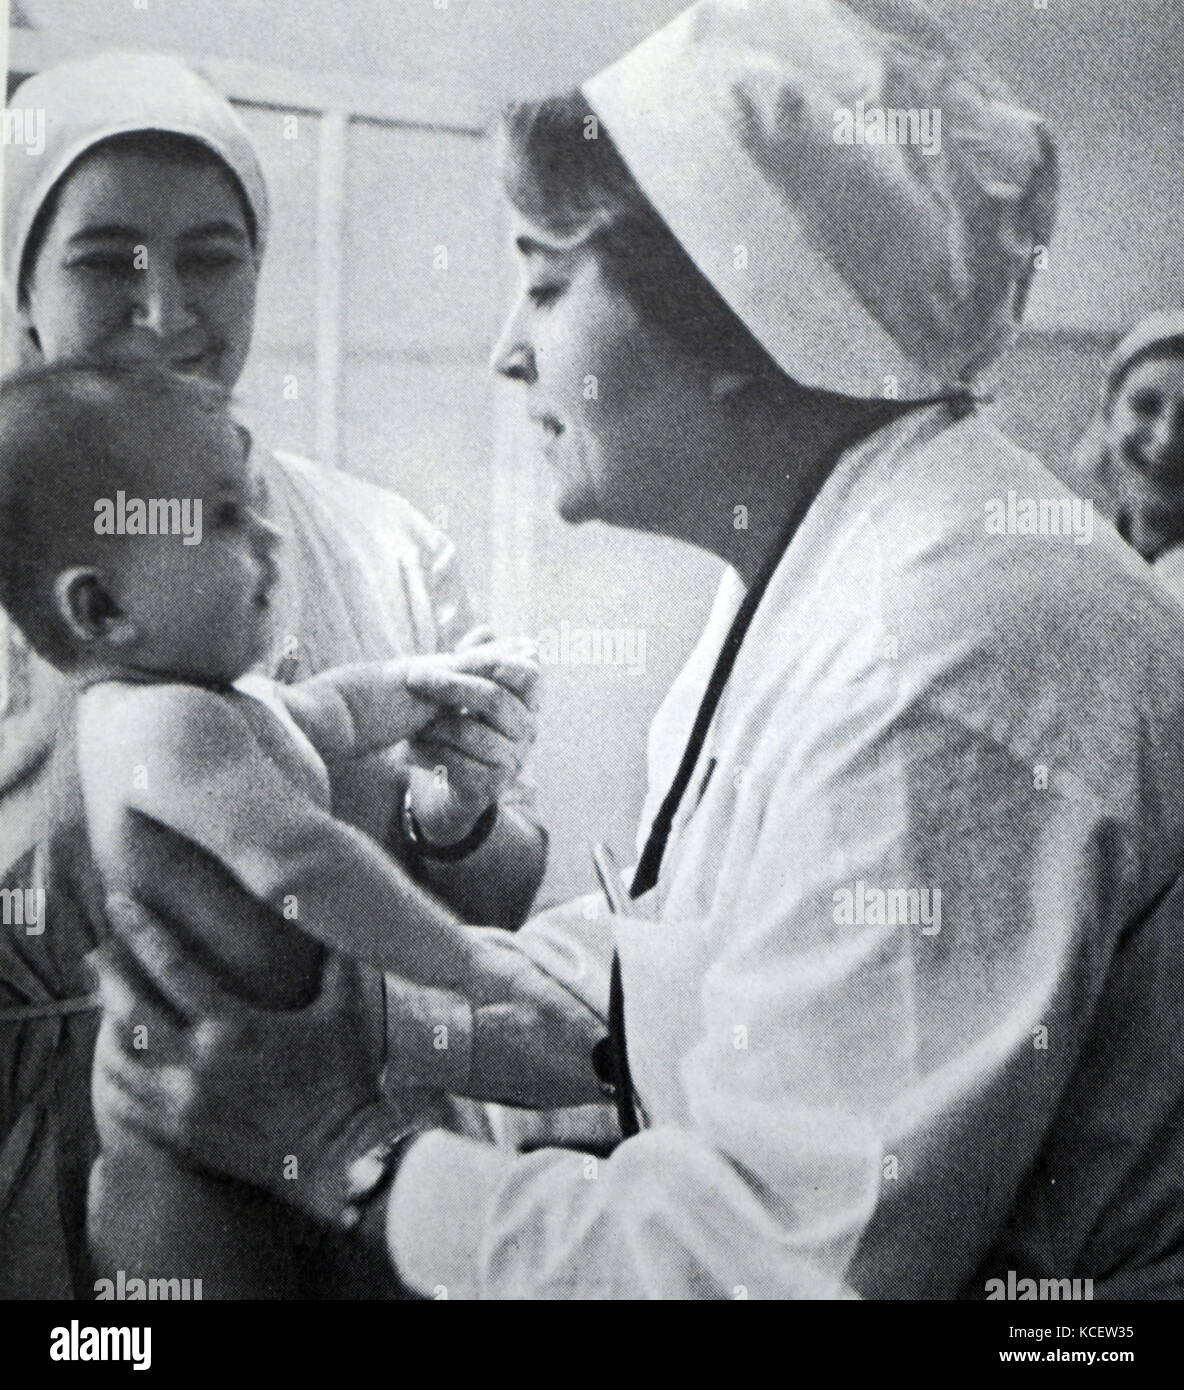 Soviet Russian paediatrician and nurse examine a baby at a hospital. Moscow circa 1960 - Stock Image